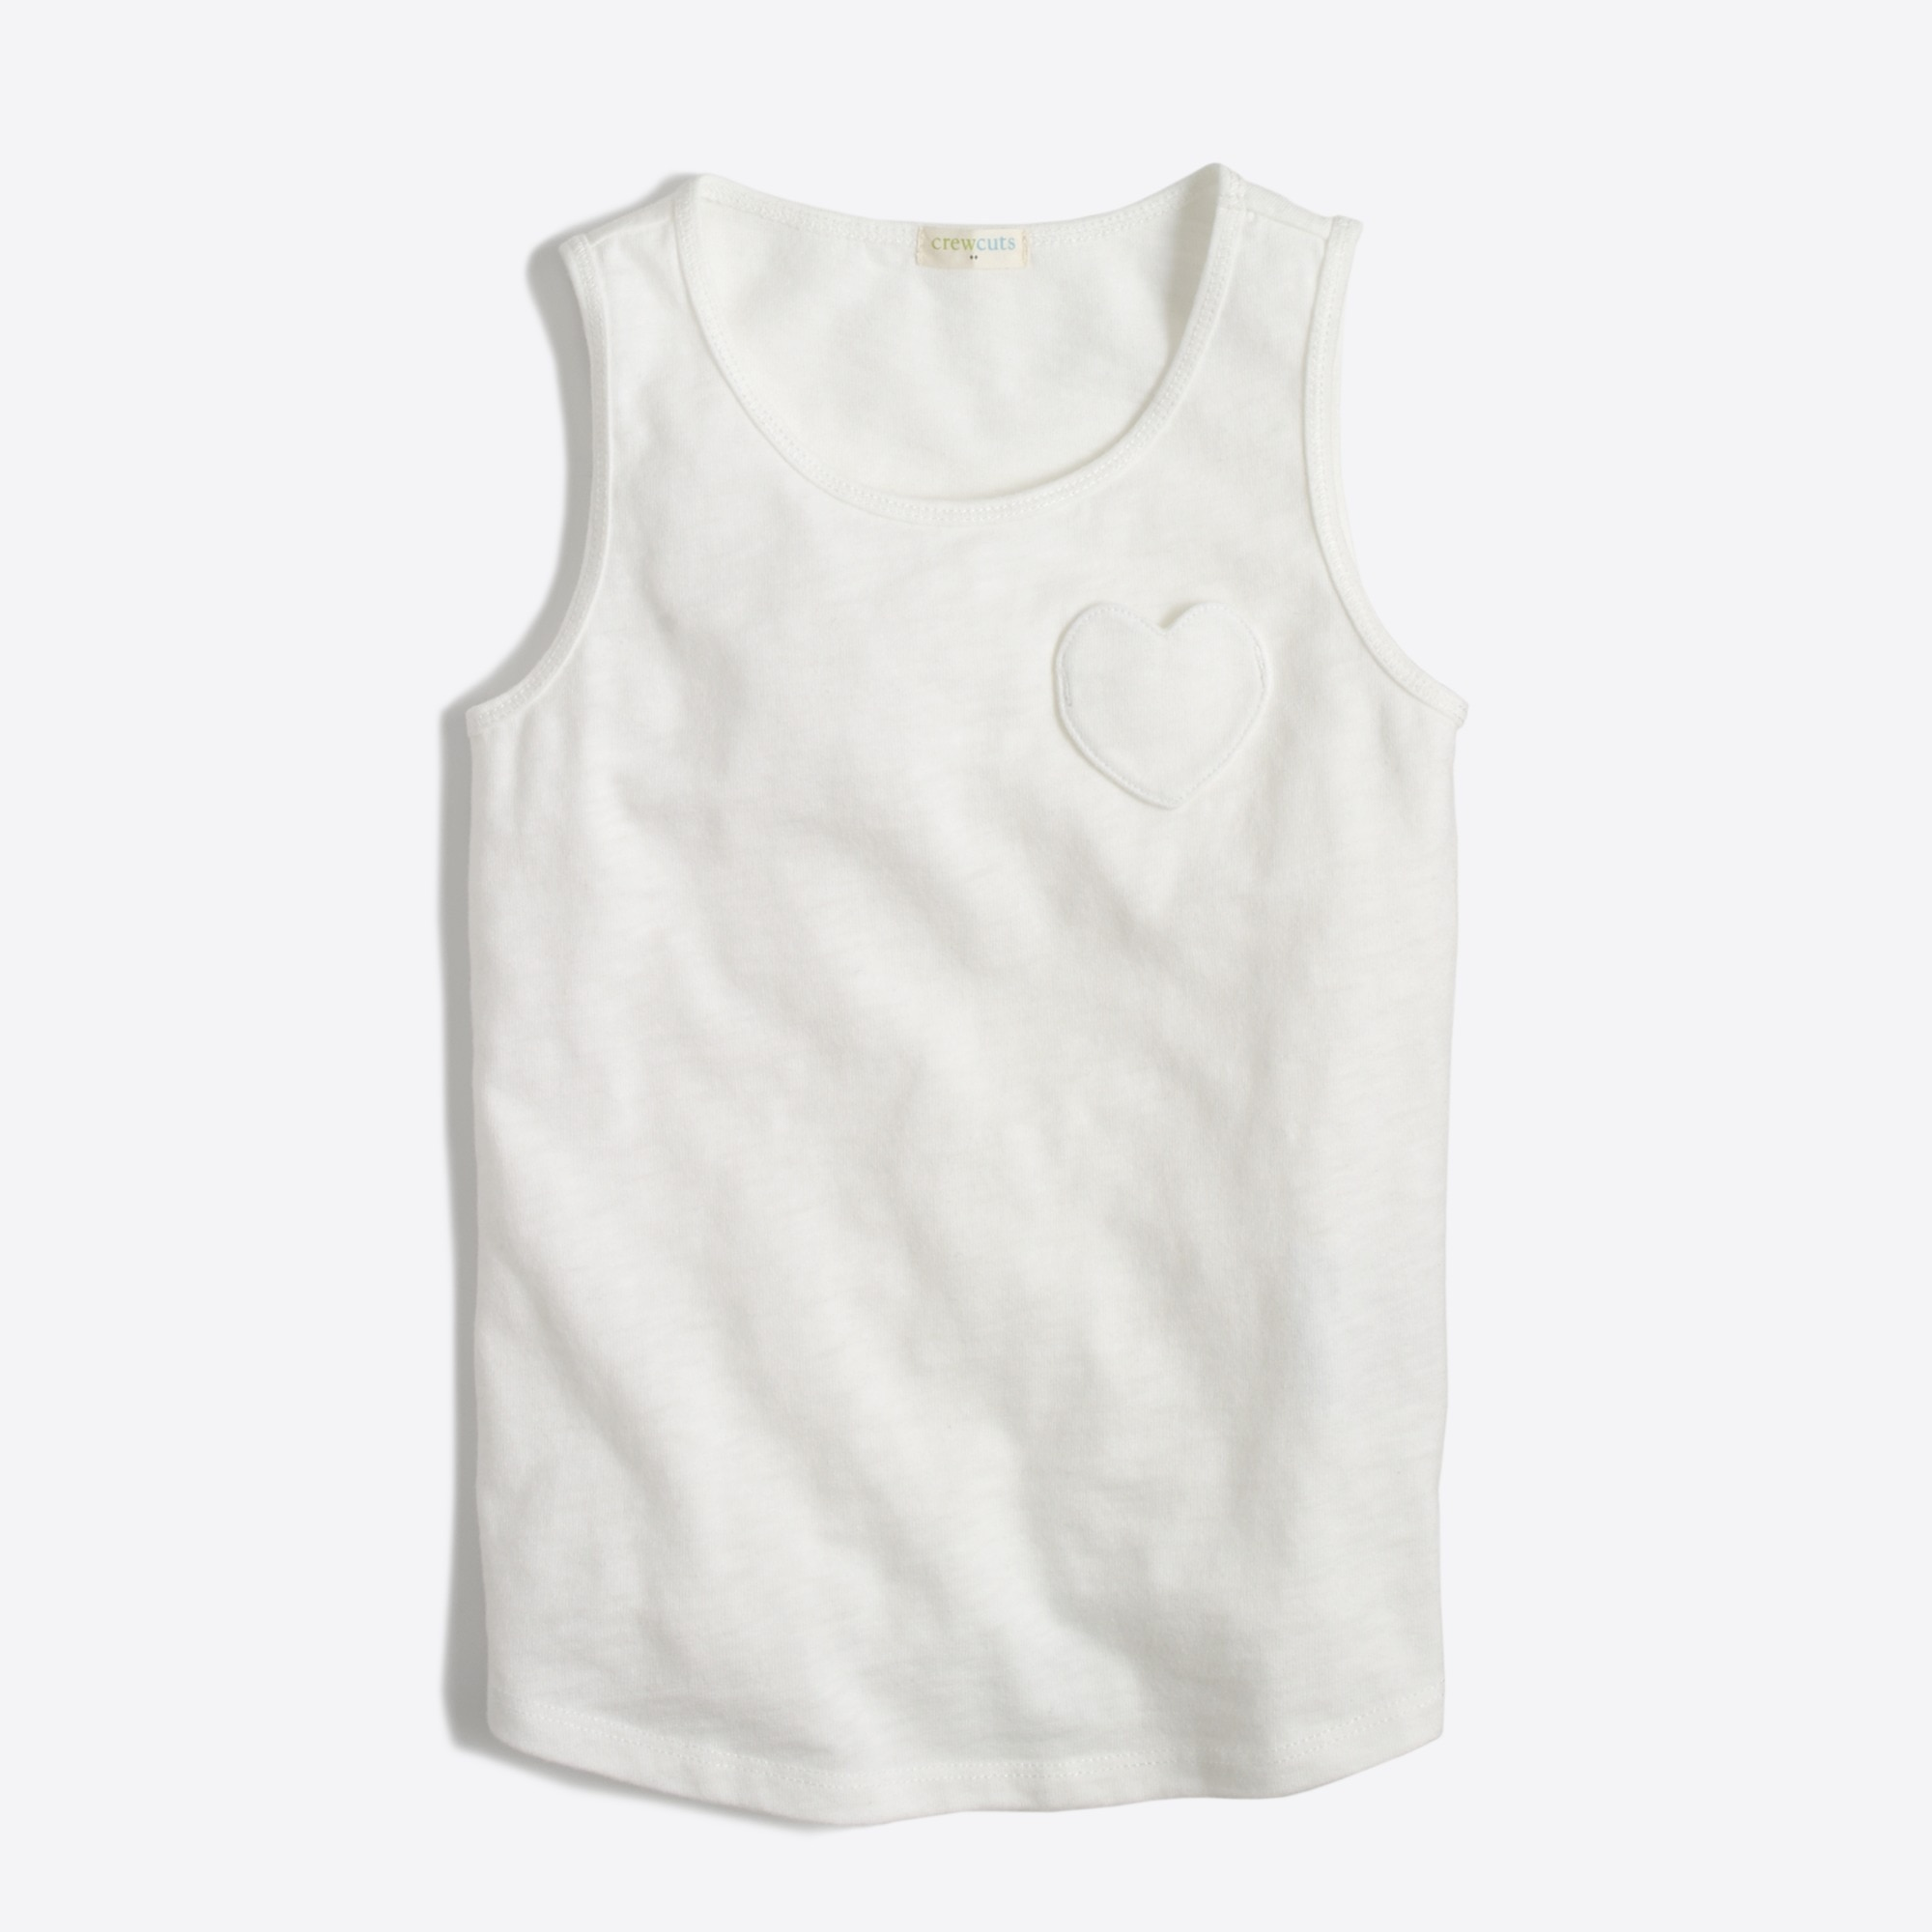 factory girls Girls' heart pocket tank top